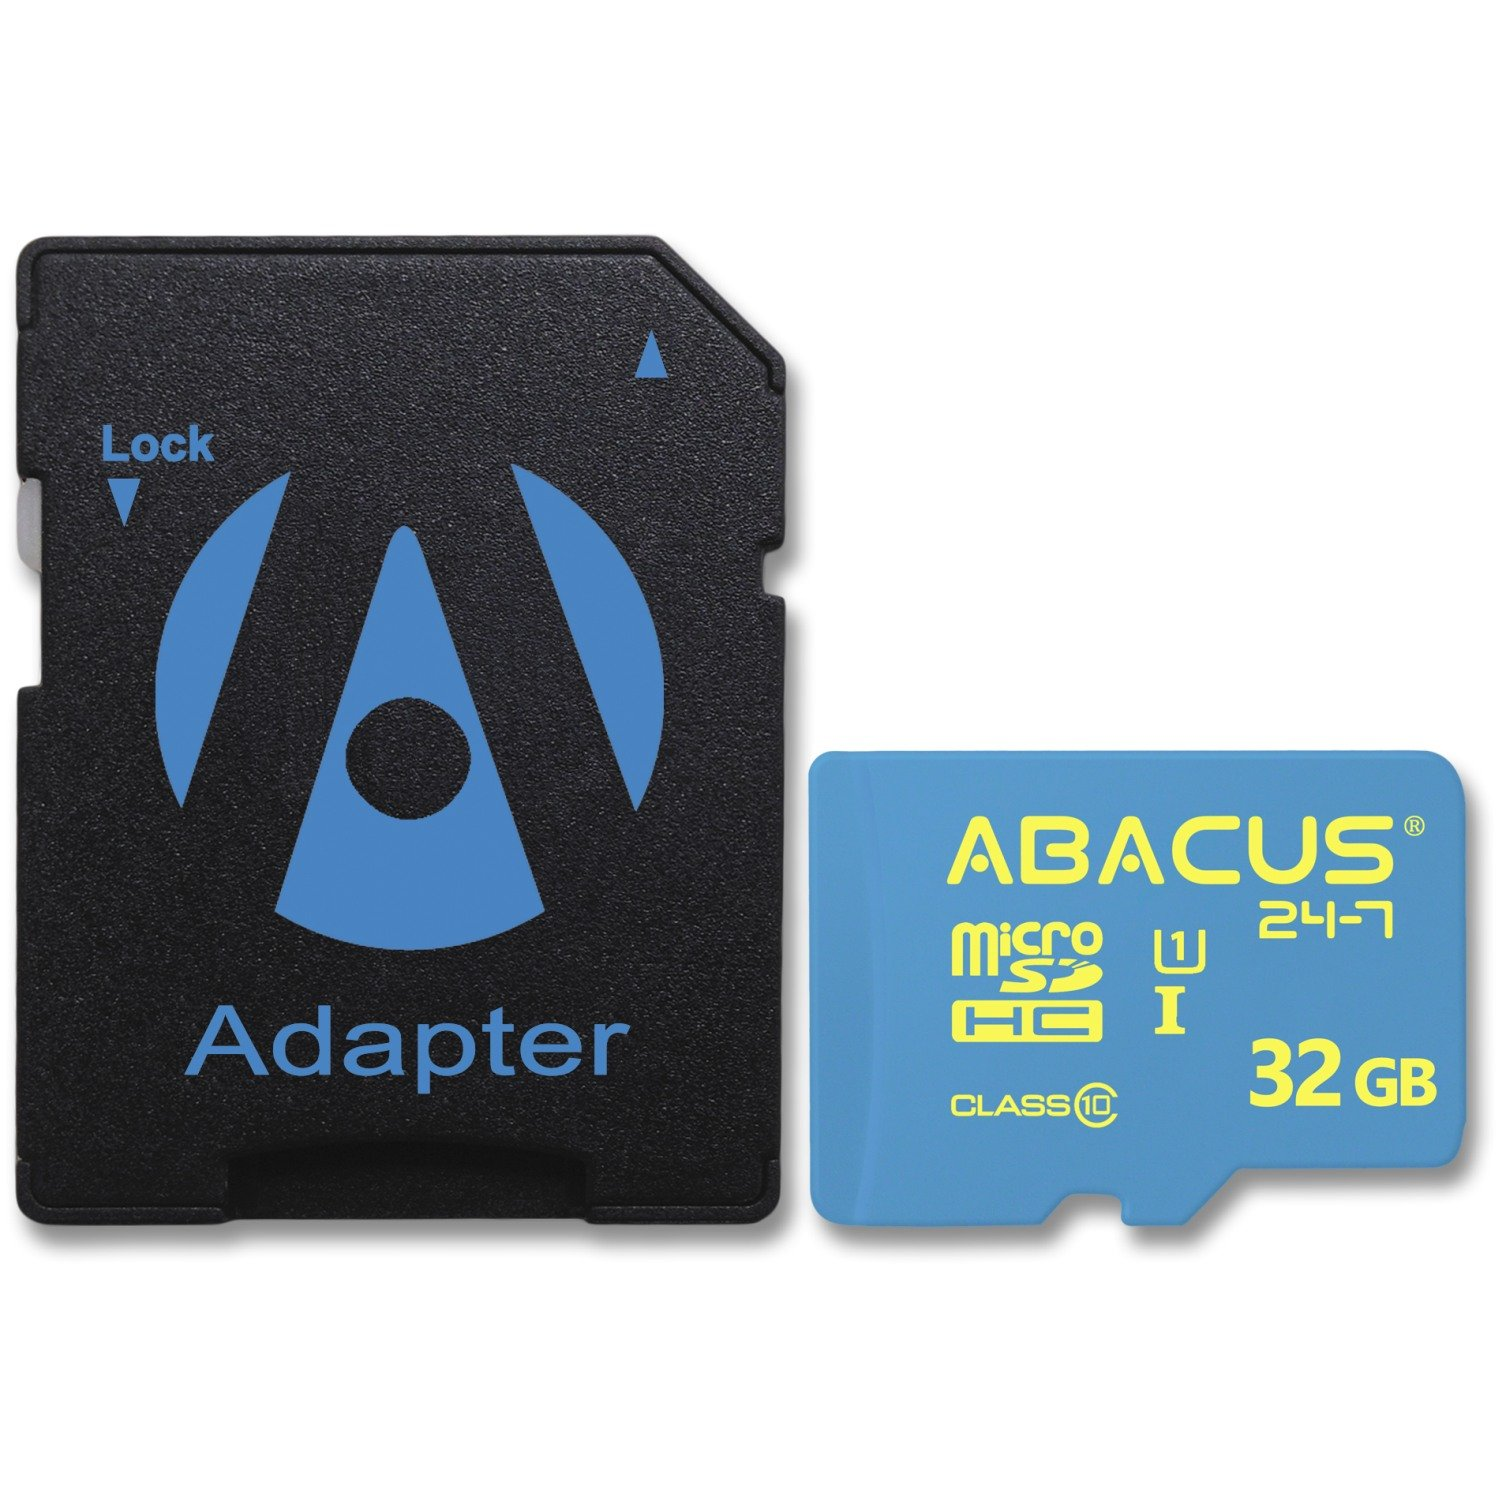 Abacus24-7 32 GB micro SD Memory Card with Adapter for Alcatel OneTouch A5 Tru Jitterbug Smart Streak Fierce XL Astro Dawn Elevate Fierce 4 Ideal Idol 3 Idol 4 Idol 4S PIXI 3 PIXI 4 POP 4 PLUS Pop 4s